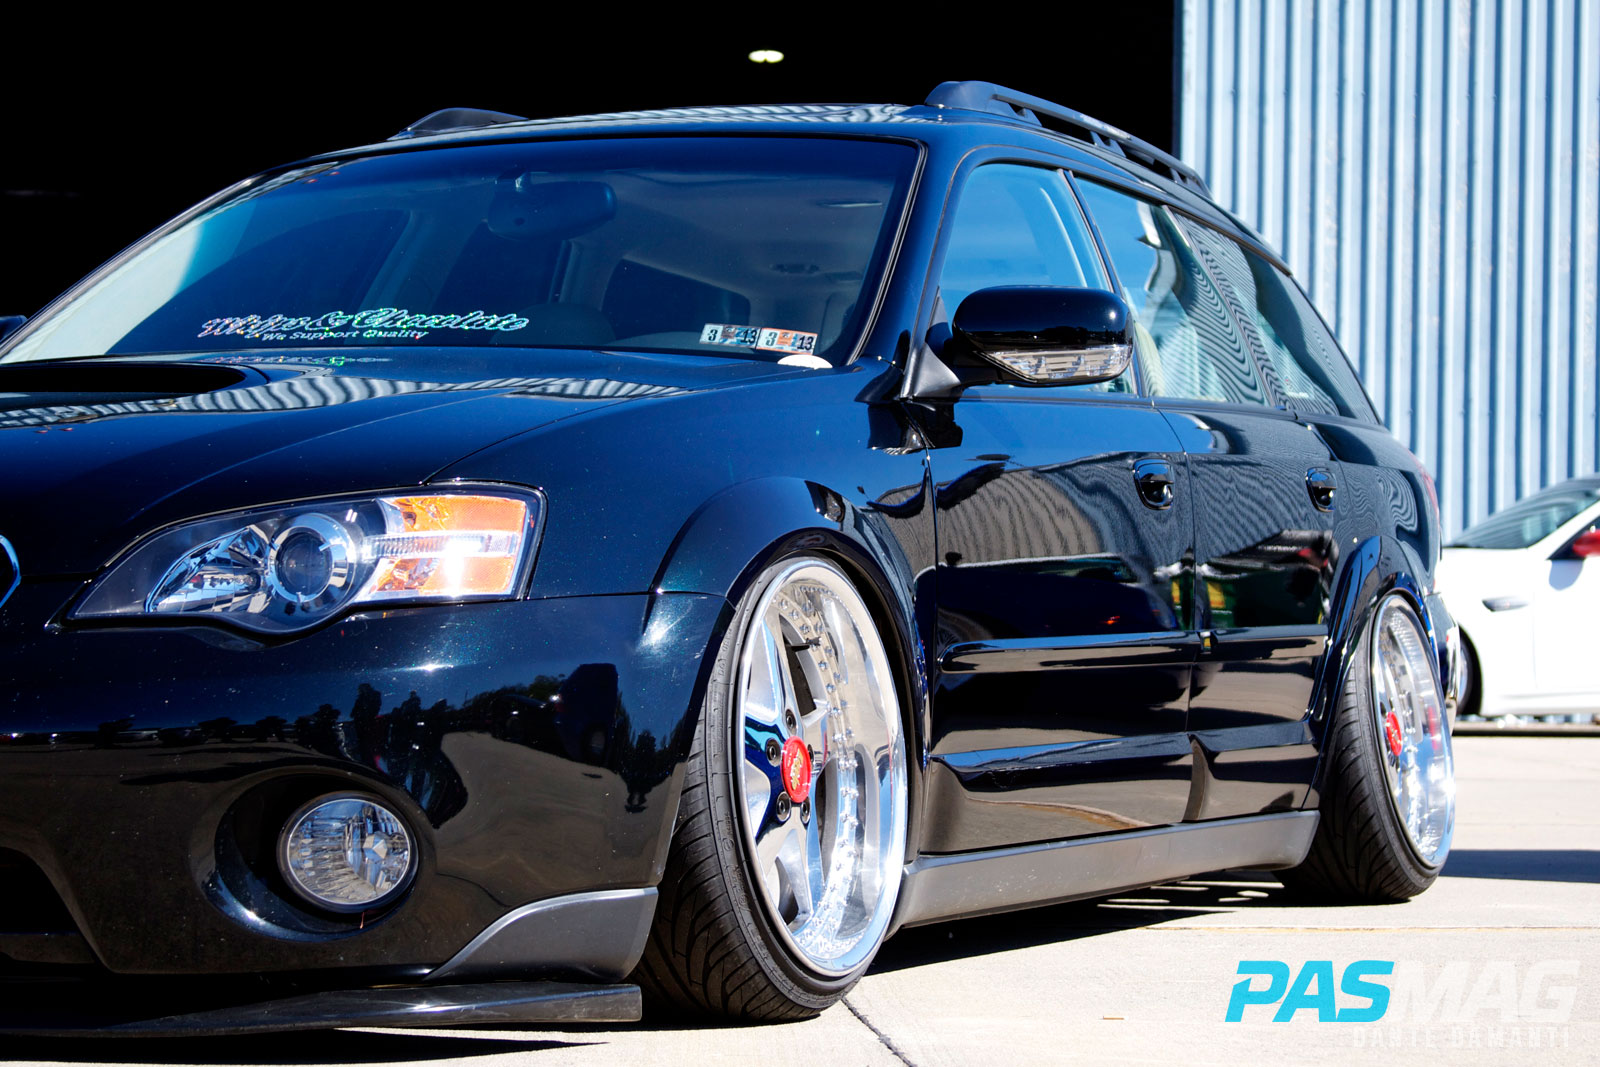 PASMAG Trending Haters Gonna Hate Subaru WRX STI Stance 08